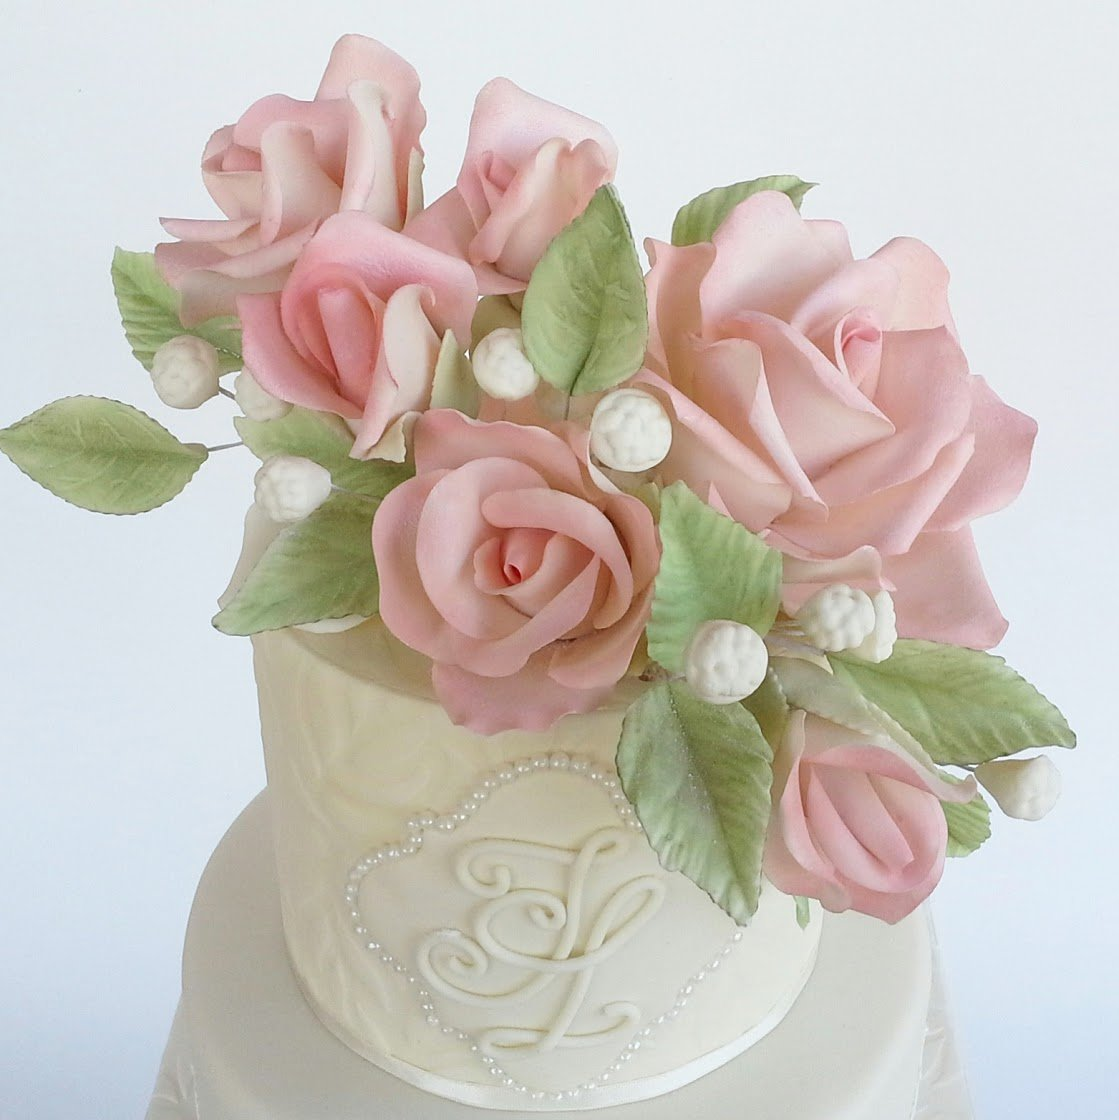 light Pink gum paste sugar flower bouquet